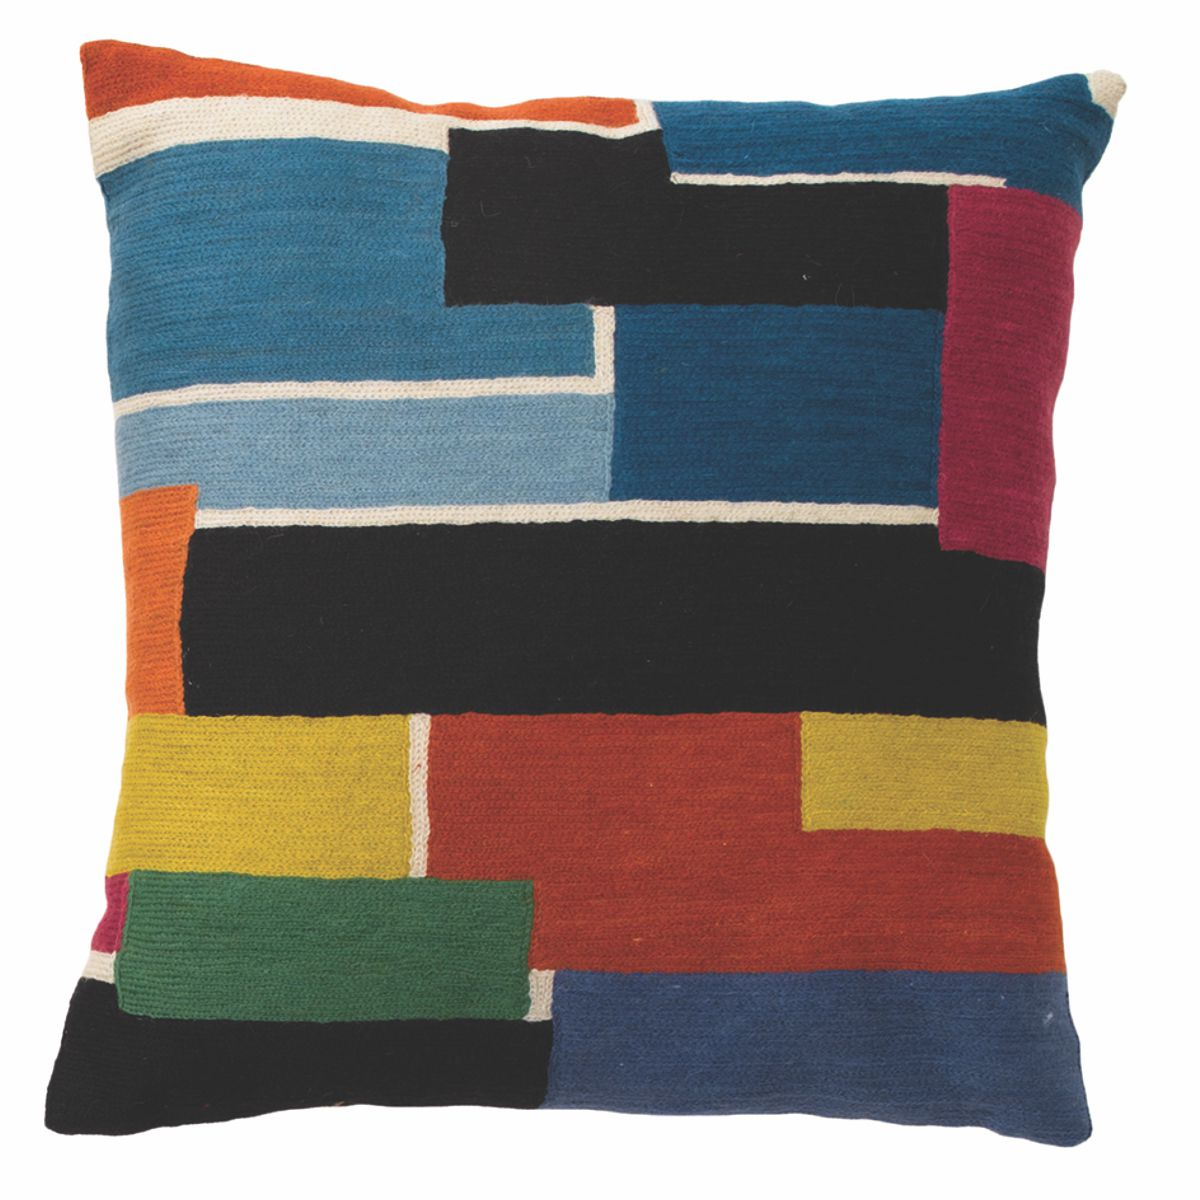 "Zaida Multi Colour Bricks Cushion 18"" 45cm x 45cm (18 x 18 inches)"